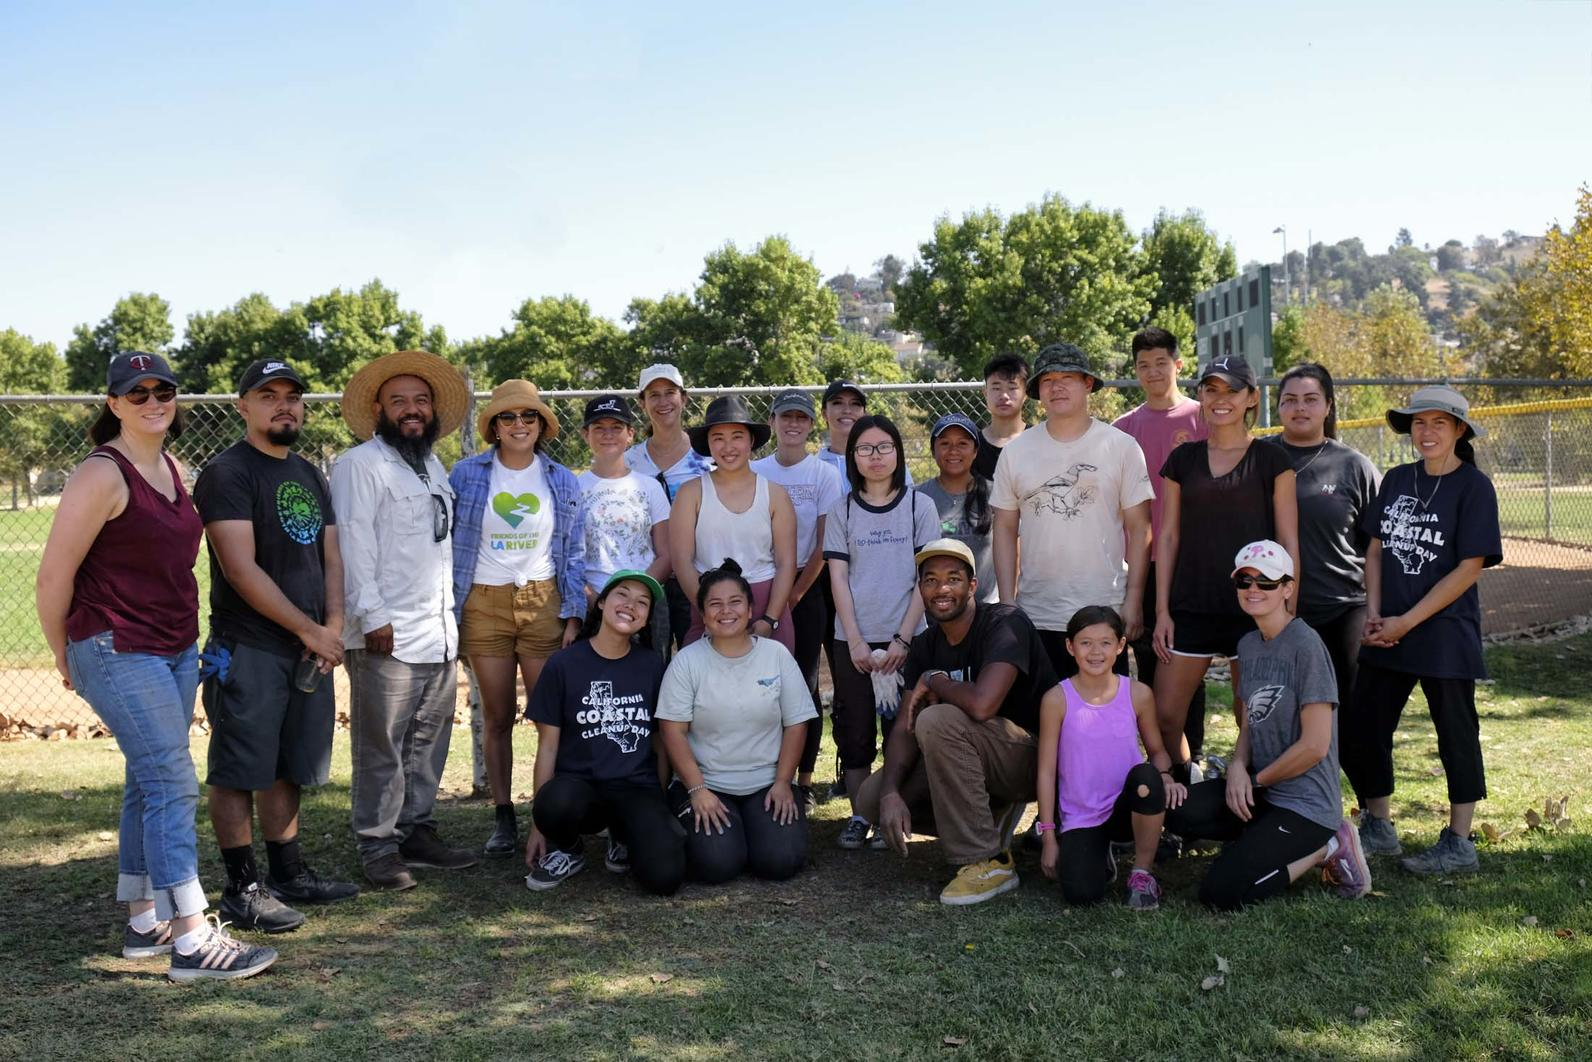 Volunteers after a successful event at Rio de Los Angeles State Park